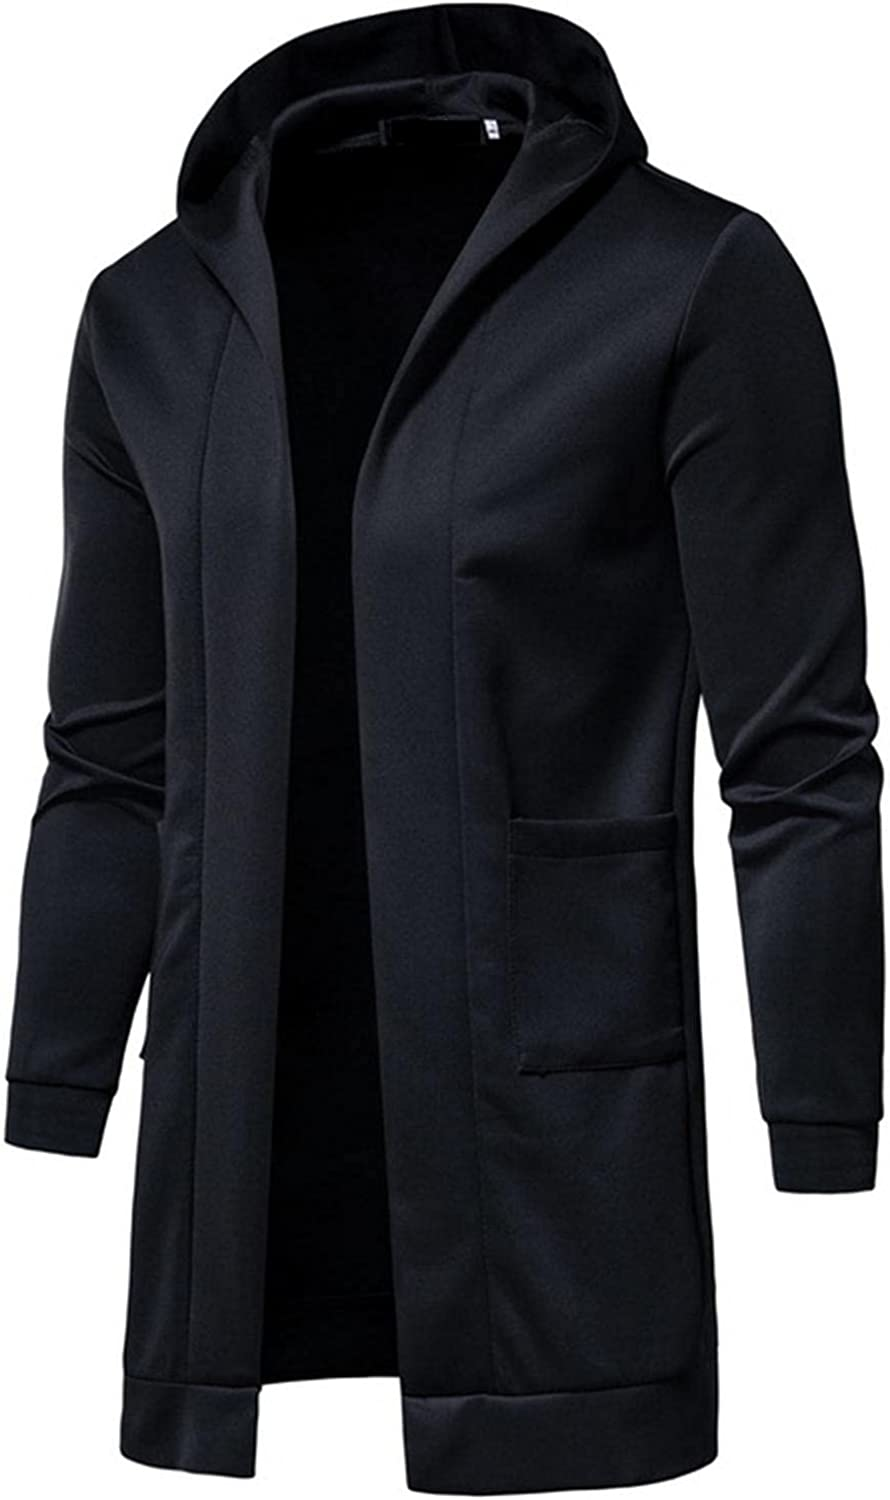 Burband 2021 Mens Casual Kimono Cardigan Jackets Big and Tall Open Front Long Hoodie Pullover Sweater Coats with Pockets